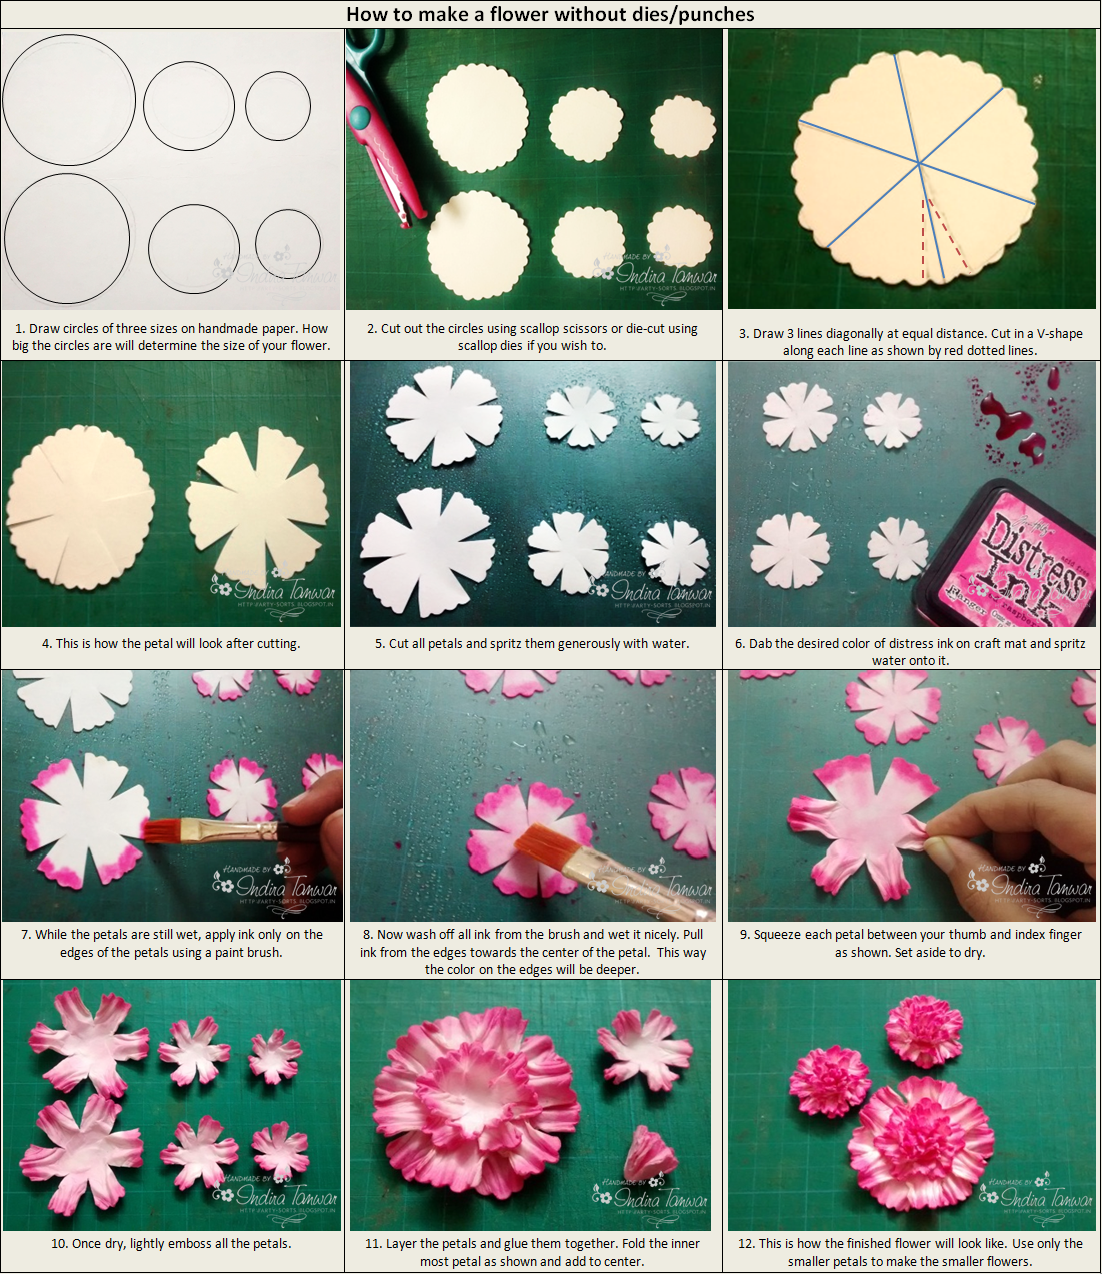 The Pictorial Below Gives Detailed Step By Instructions To Make Flower